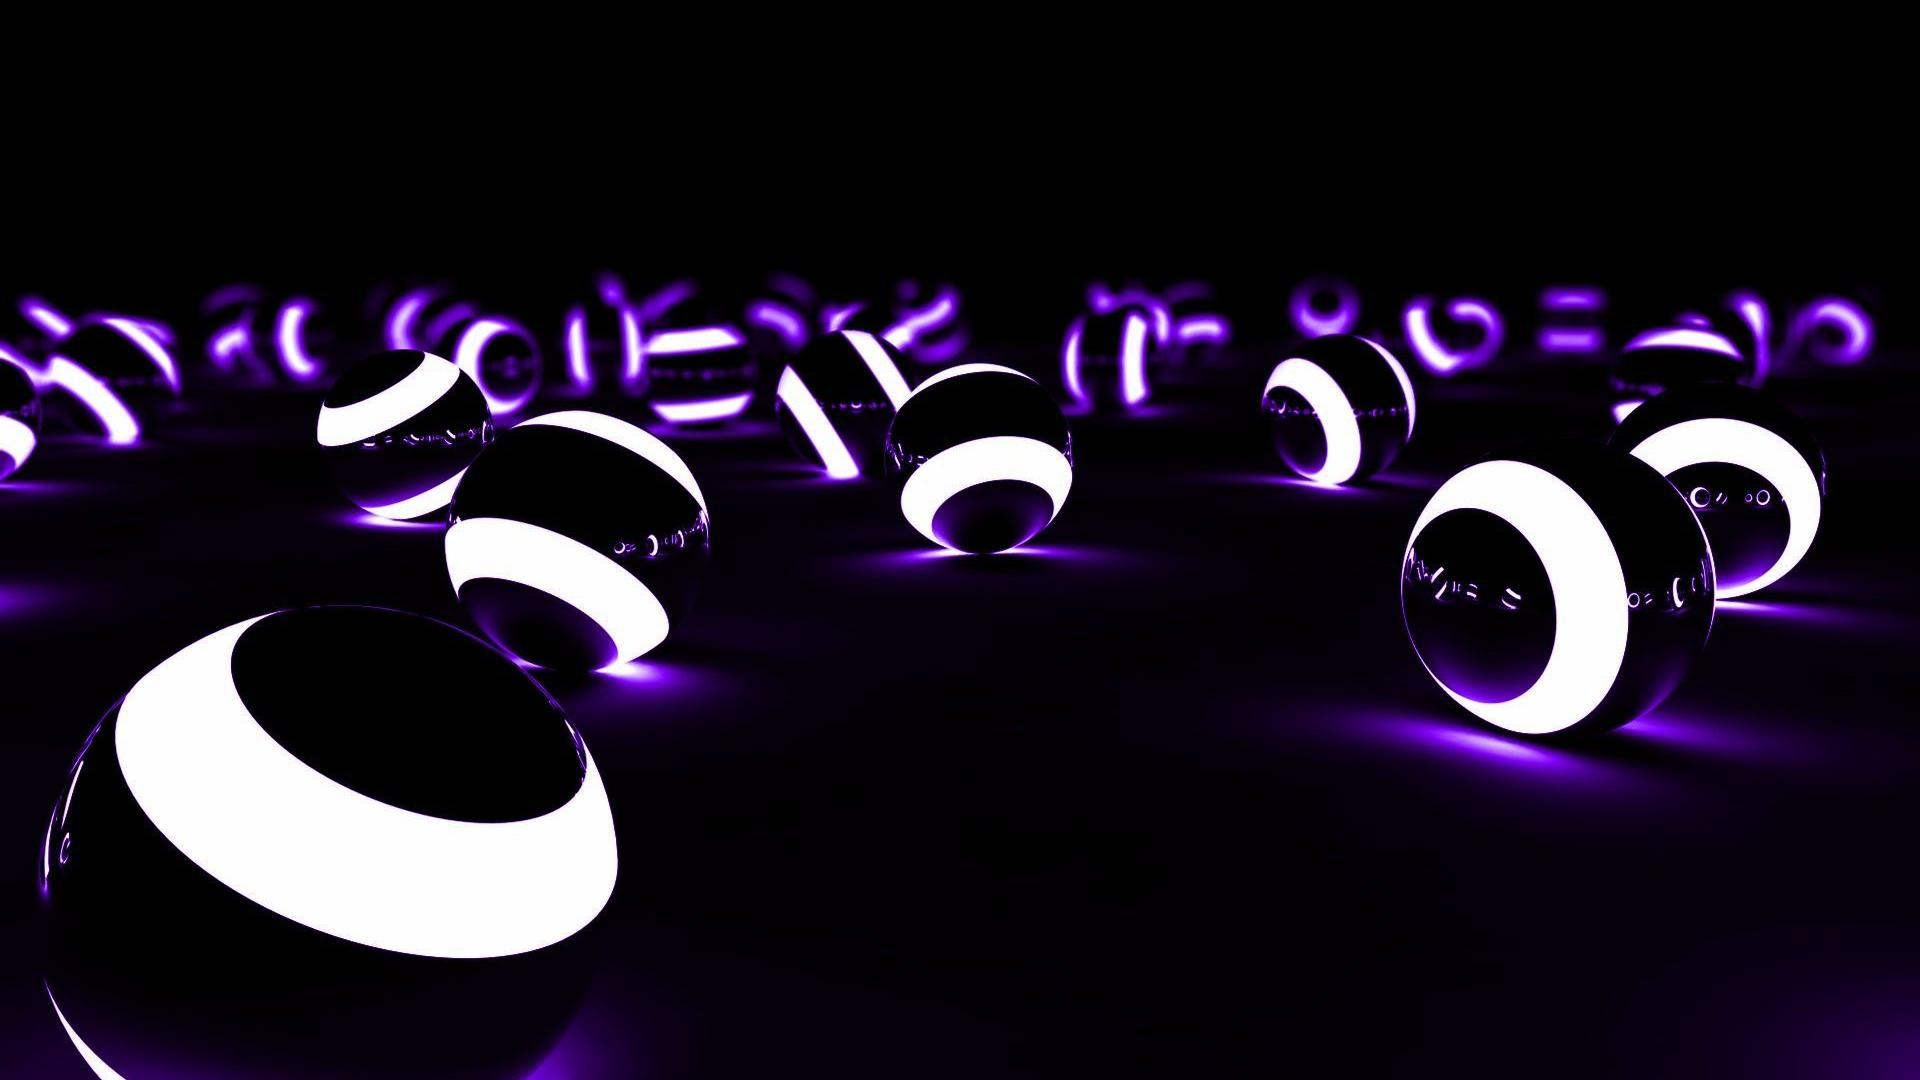 glowing balls cool wallpapers share this cool wallpaper on facebook 1920x1080